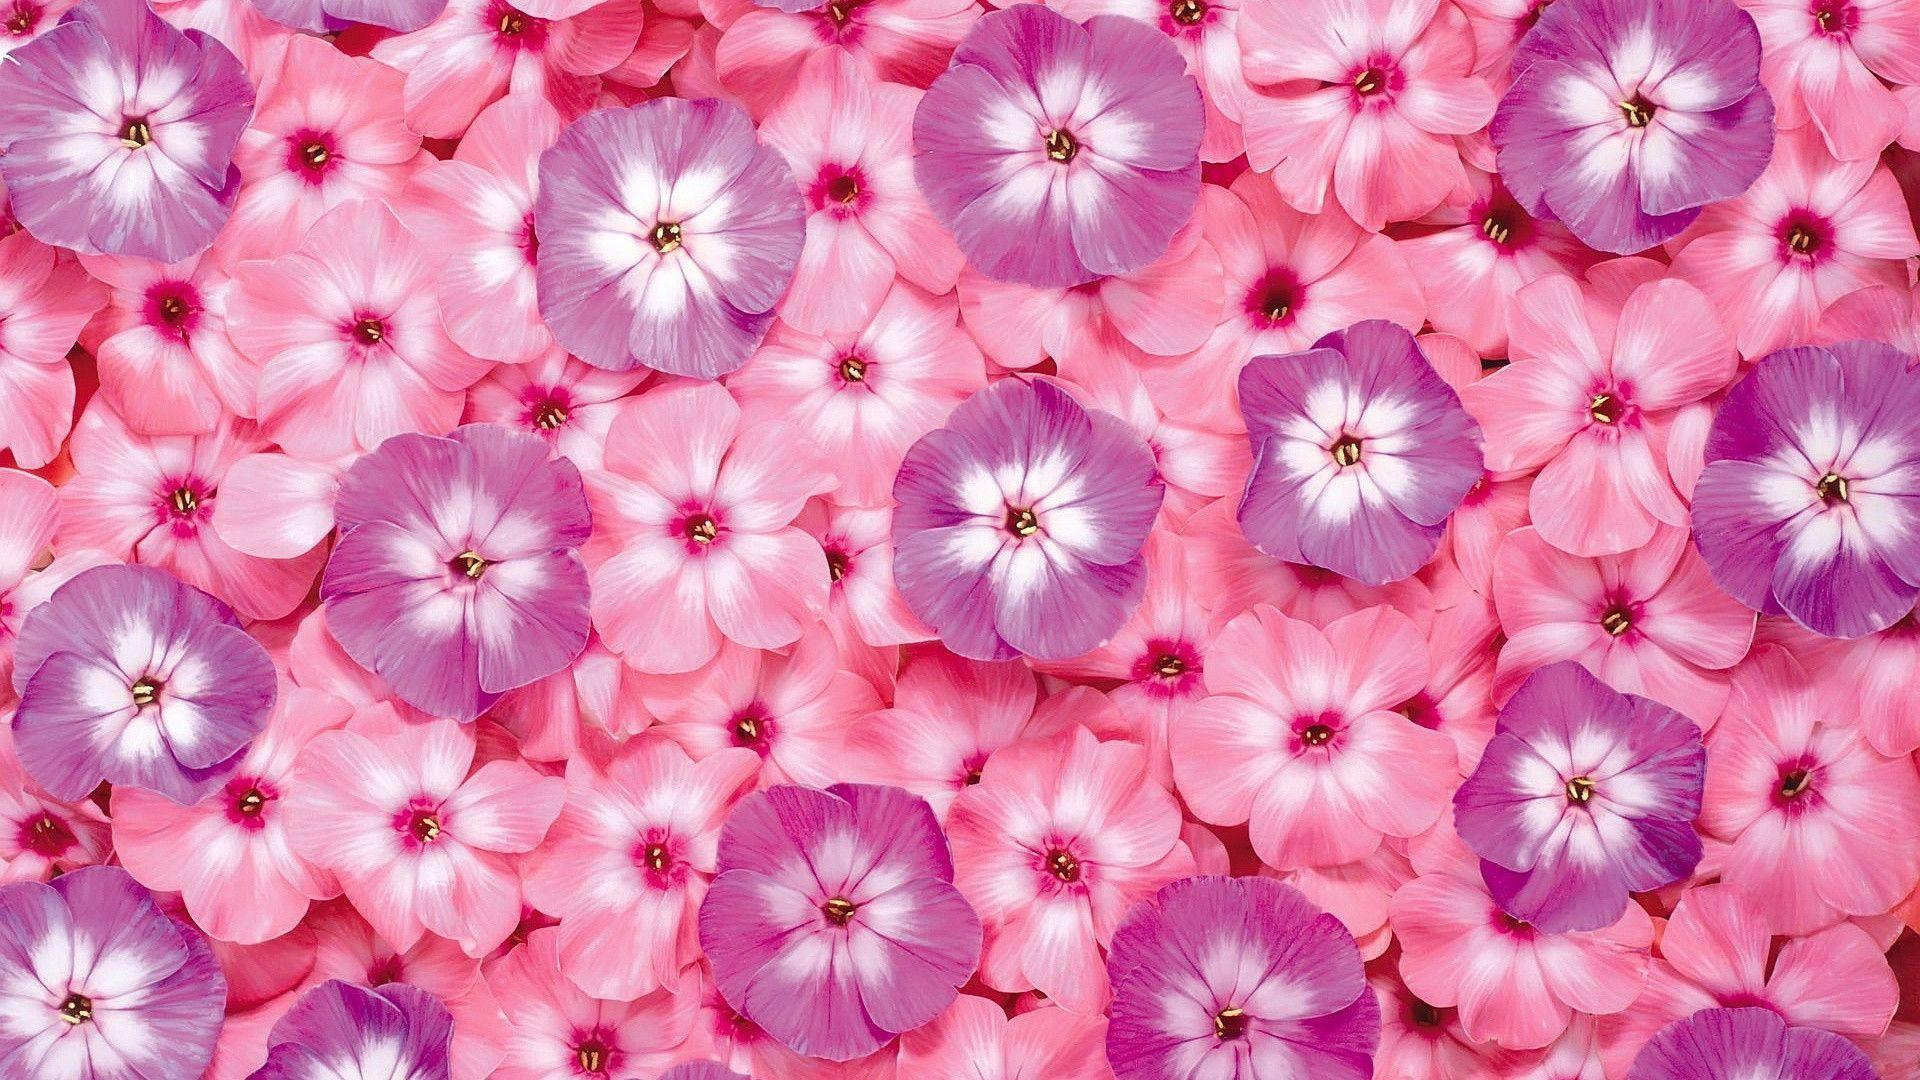 Pink flower wallpaper backgrounds wallpaper cave pink flower hd wallpaper pink flower photos cool wallpapers mightylinksfo